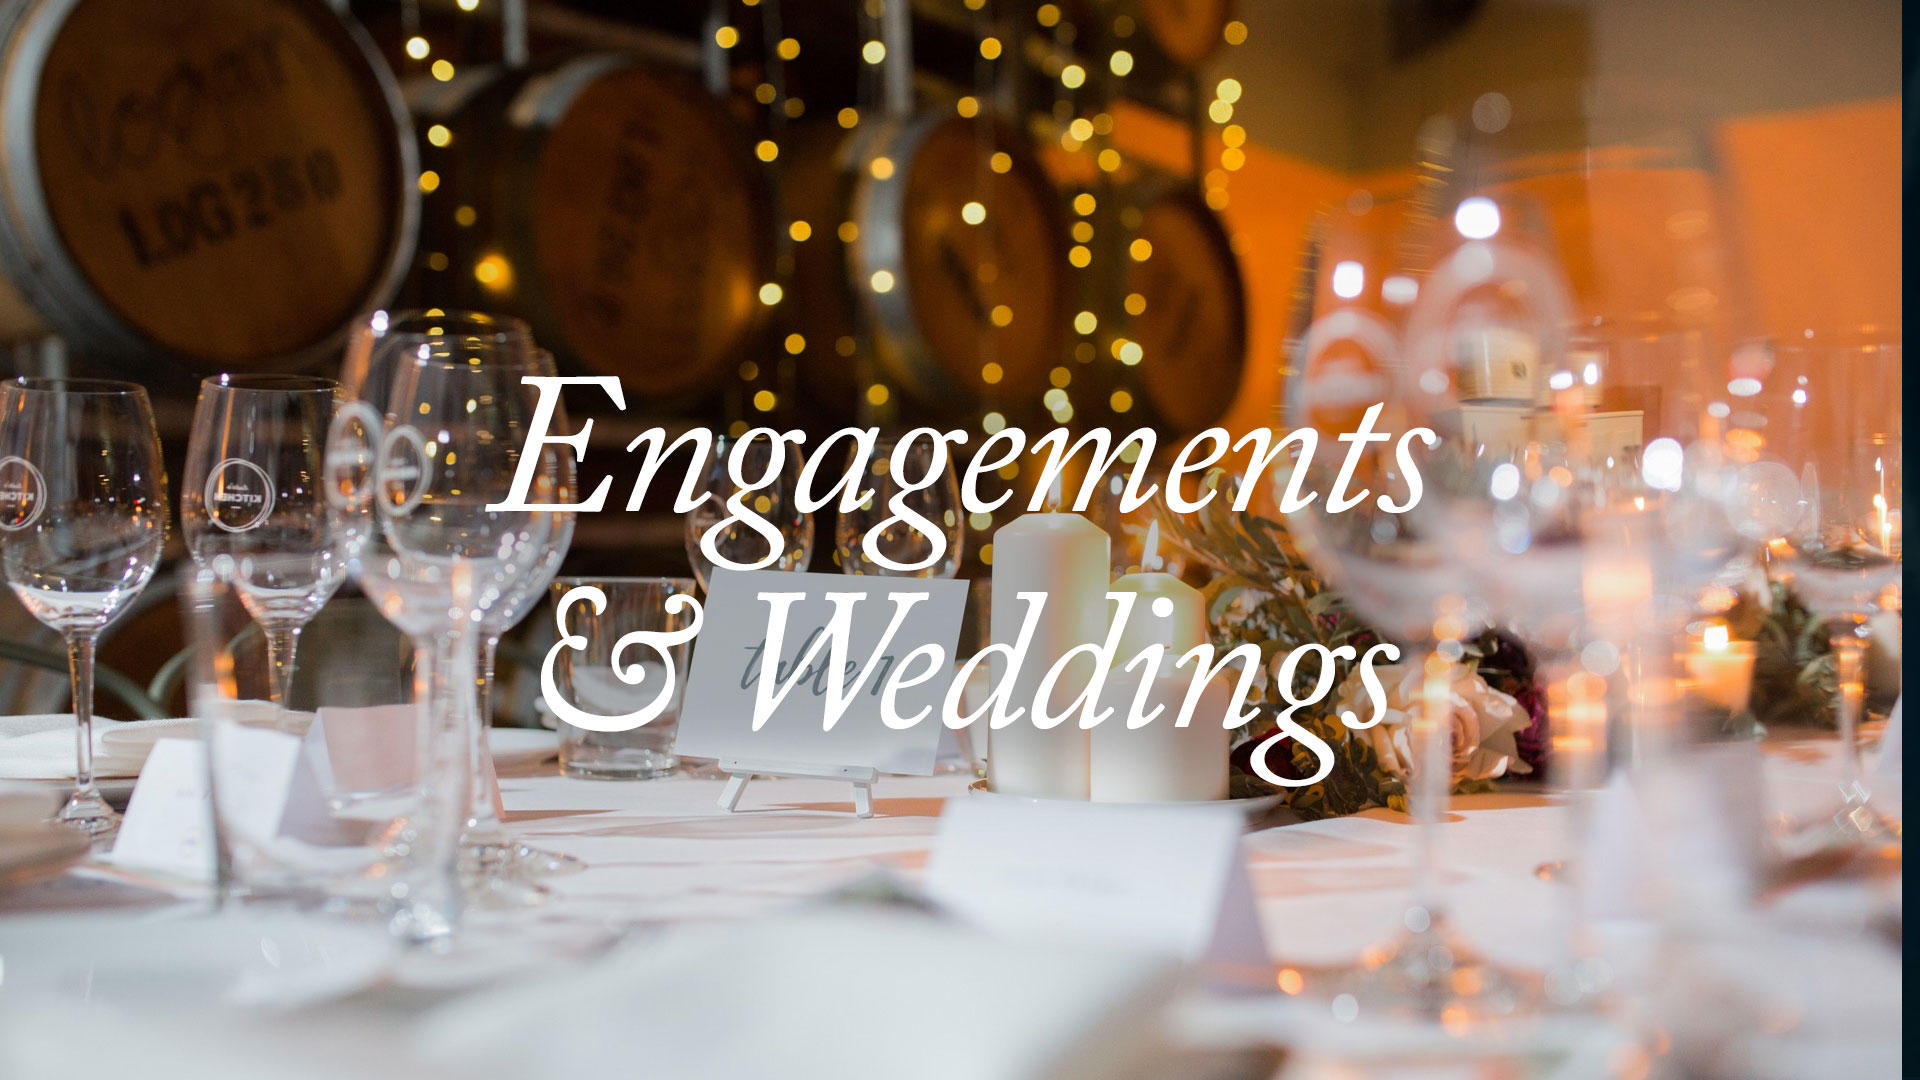 Engagements-&-Weddings.jpg